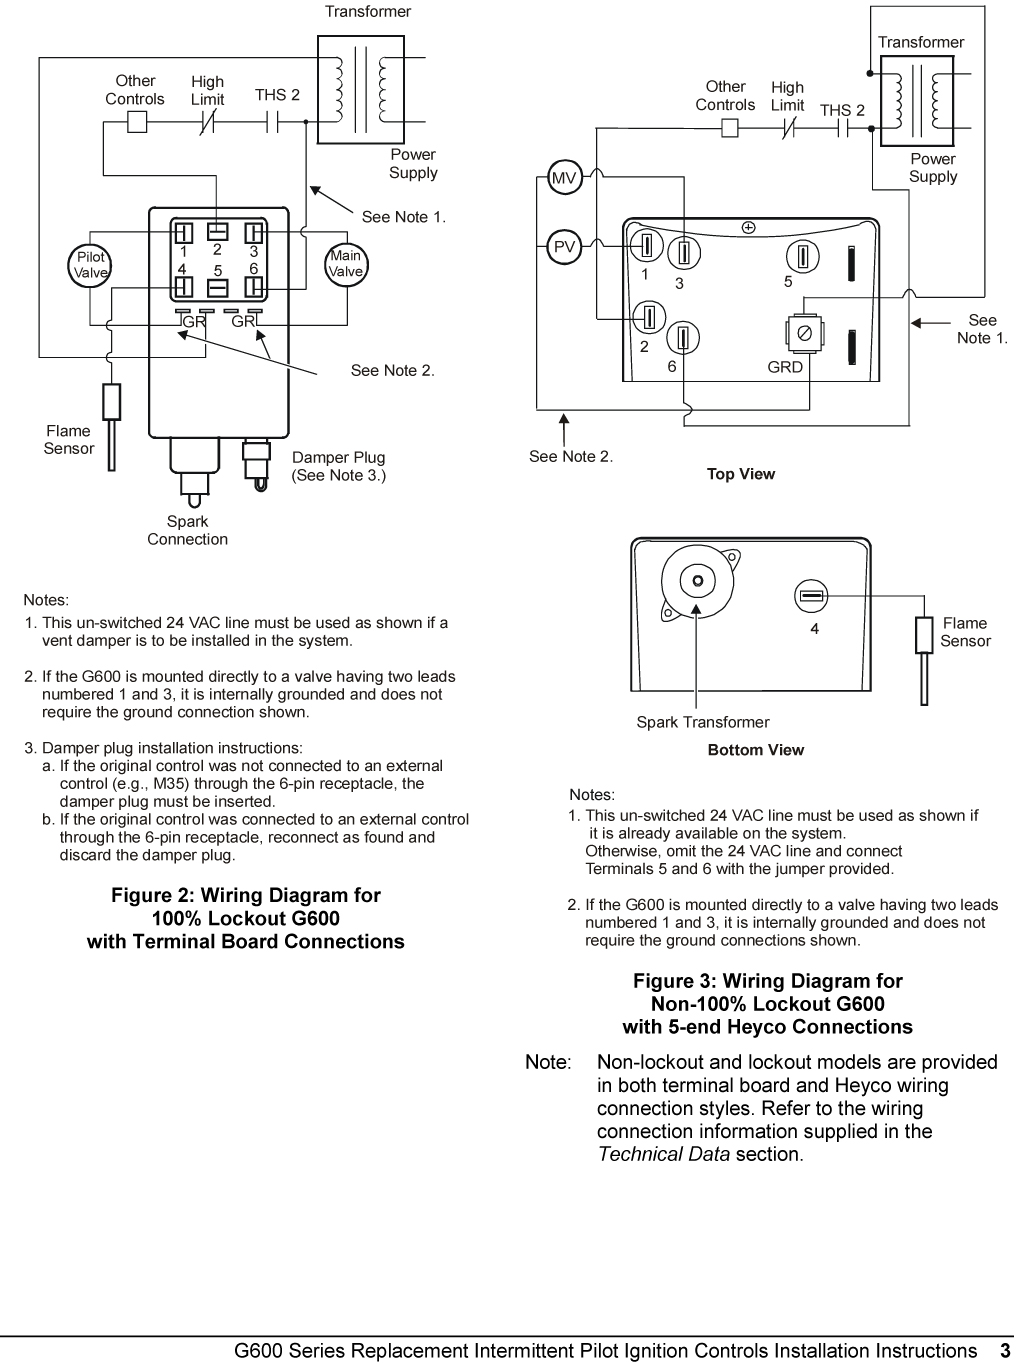 Honeywell S8610u Wiring Diagram Share The Knownledge Wire Data Furnace Controller Rick Do Yo Have Time Now To Work On A Hvac Heating Problem Yes I Rh Justanswer Com Ignition Control Gas Valve